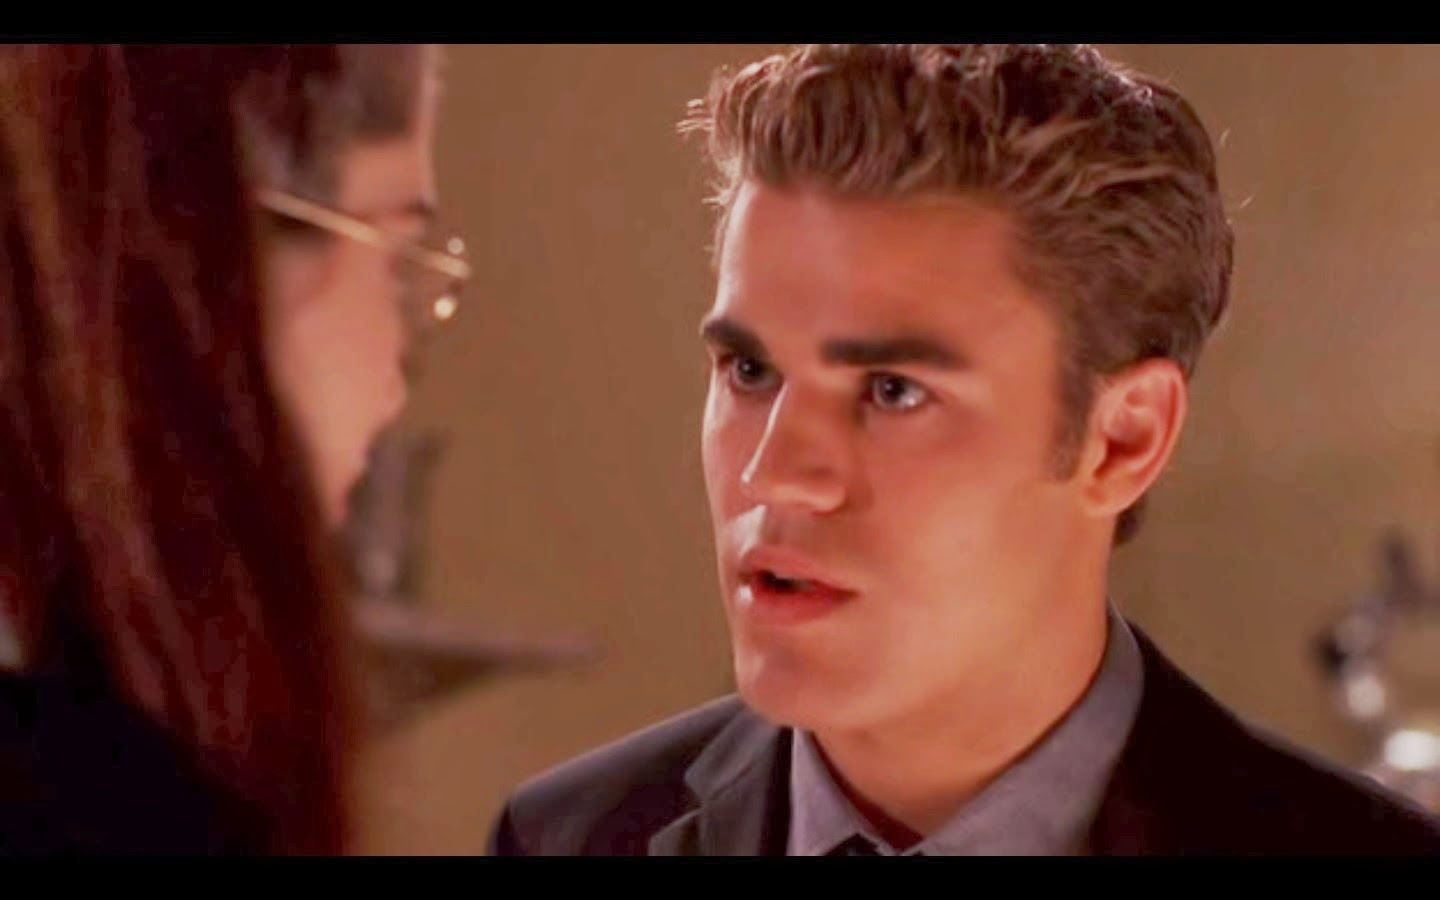 Shirtless Guys are Hot: Paul Wesley Gets Naked in Wolf Lake